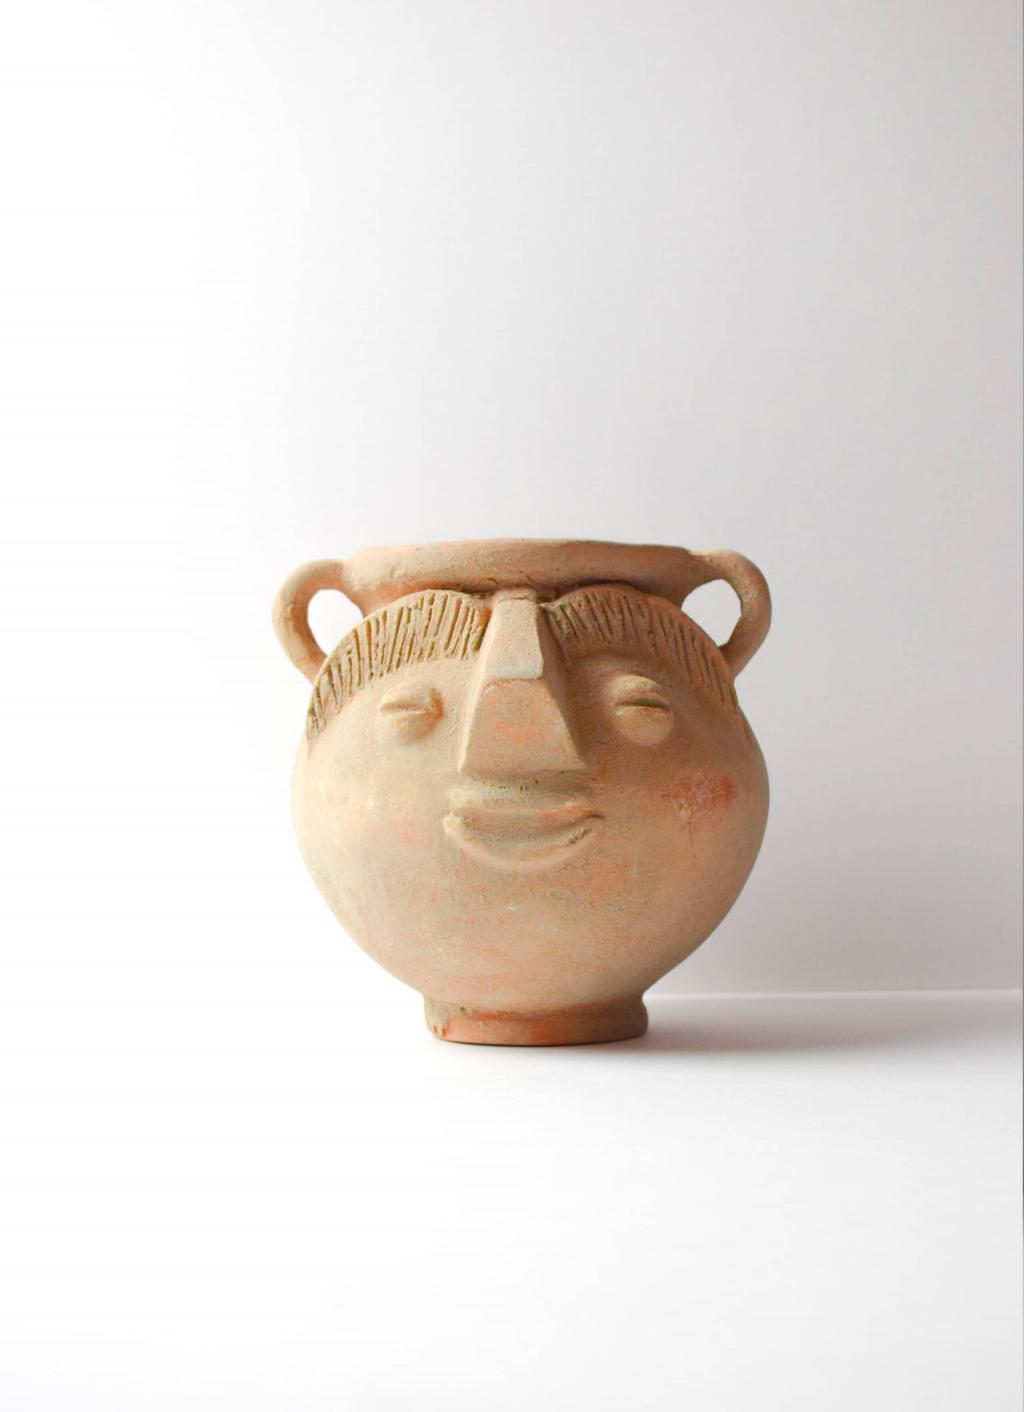 La Soufflerie - Pitchoune - Flower Pot - Terracotta